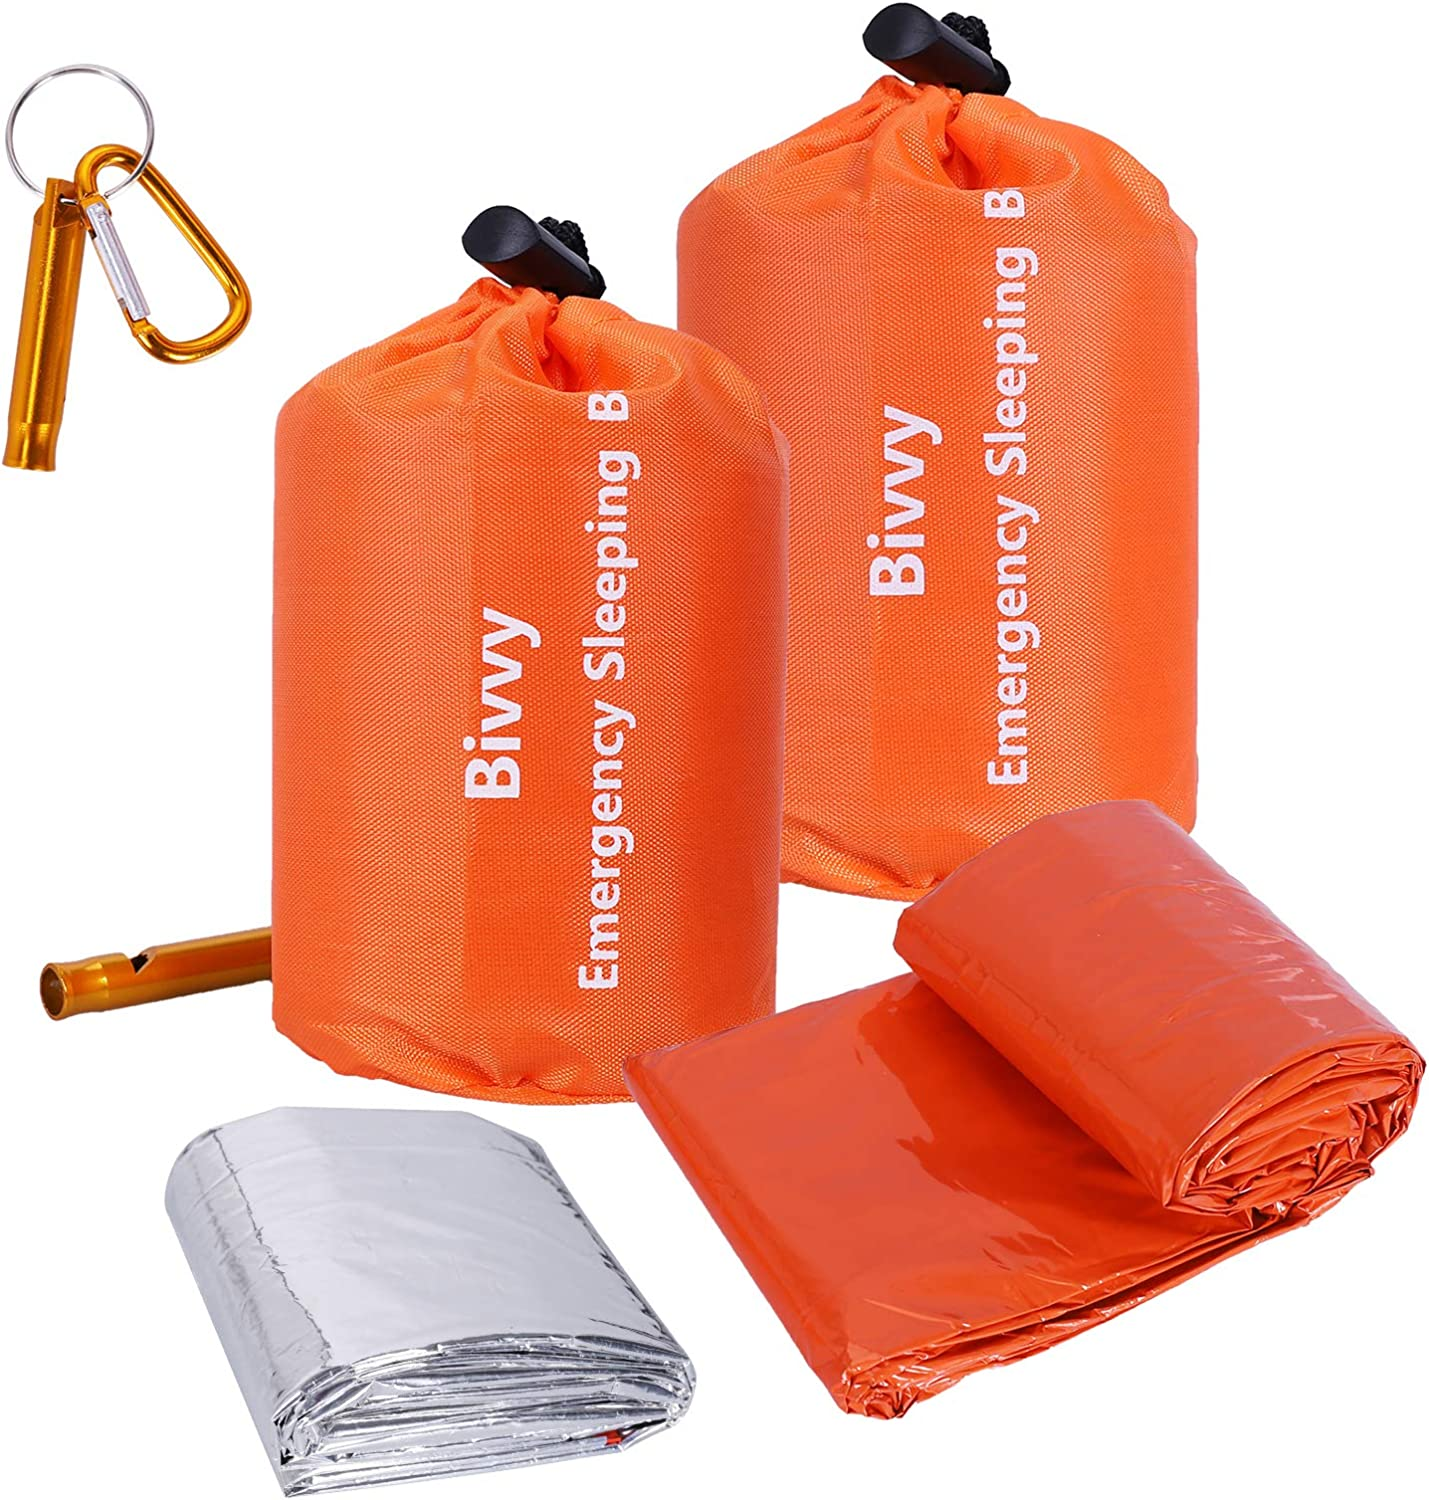 Xtextile 2Pack Emergency Sleeping Bags Lightweight and Compact Sack Survival Sleeping Bag Waterproof Thermal Emergency Blanket Survival Gear for Outdoor Camping, Hiking, Wild Adventures : Sports & Outdoors